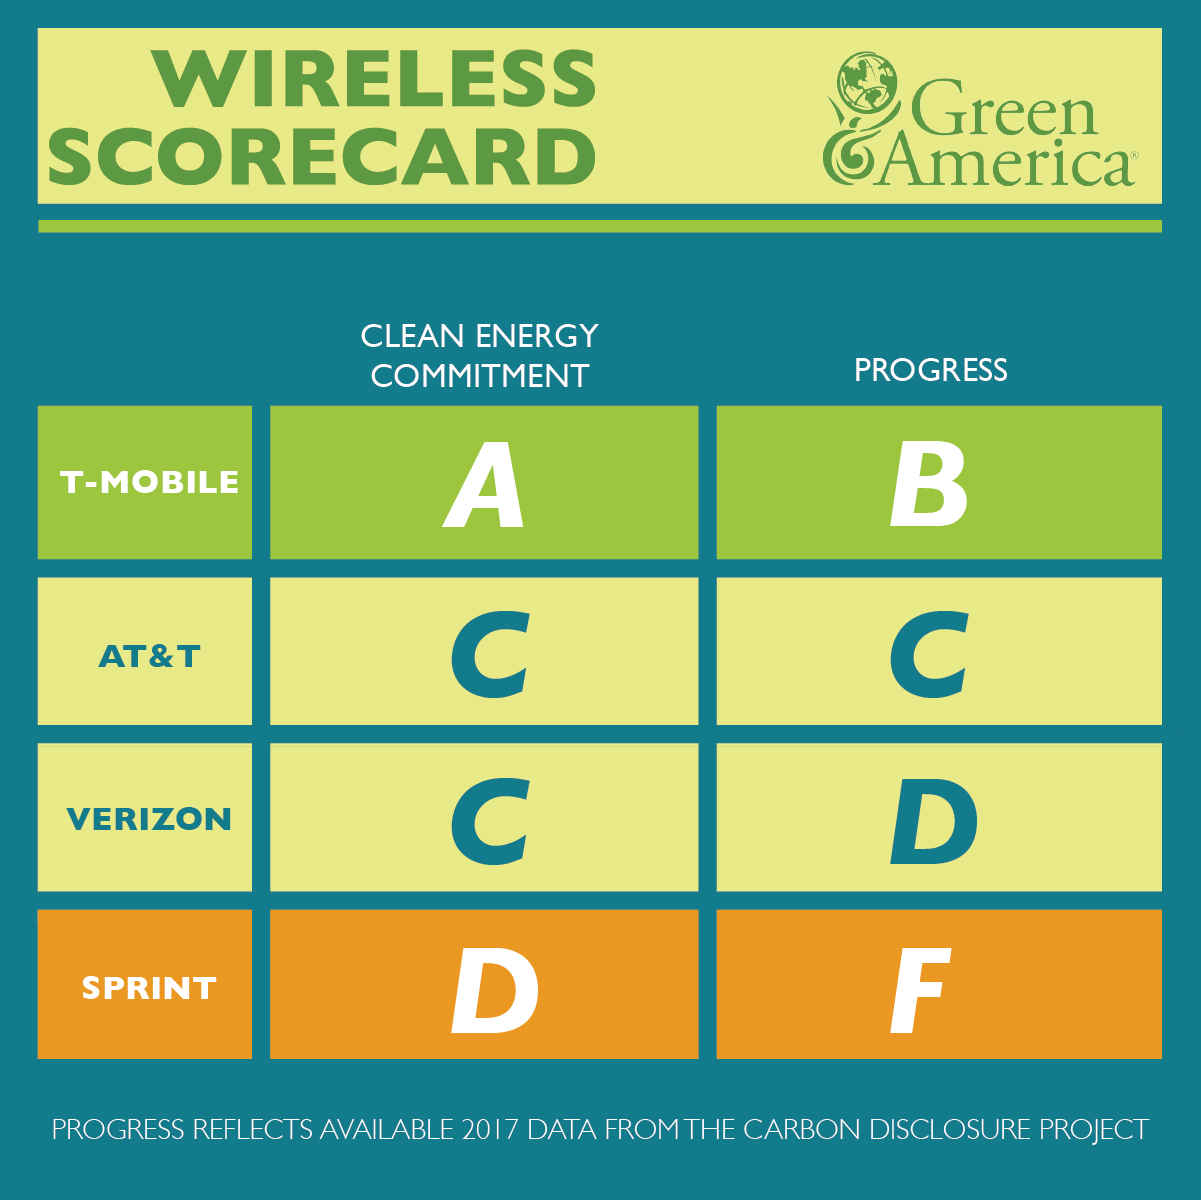 Green America 2019 Wireless Scorecard, T-mobile receives an A for commitment to clean energy and a B for progress. AT&T has a C for commitment and C for progress. Verizon has a C for commitment and a D on progress. Sprint has a D for commitment and an F on progress.